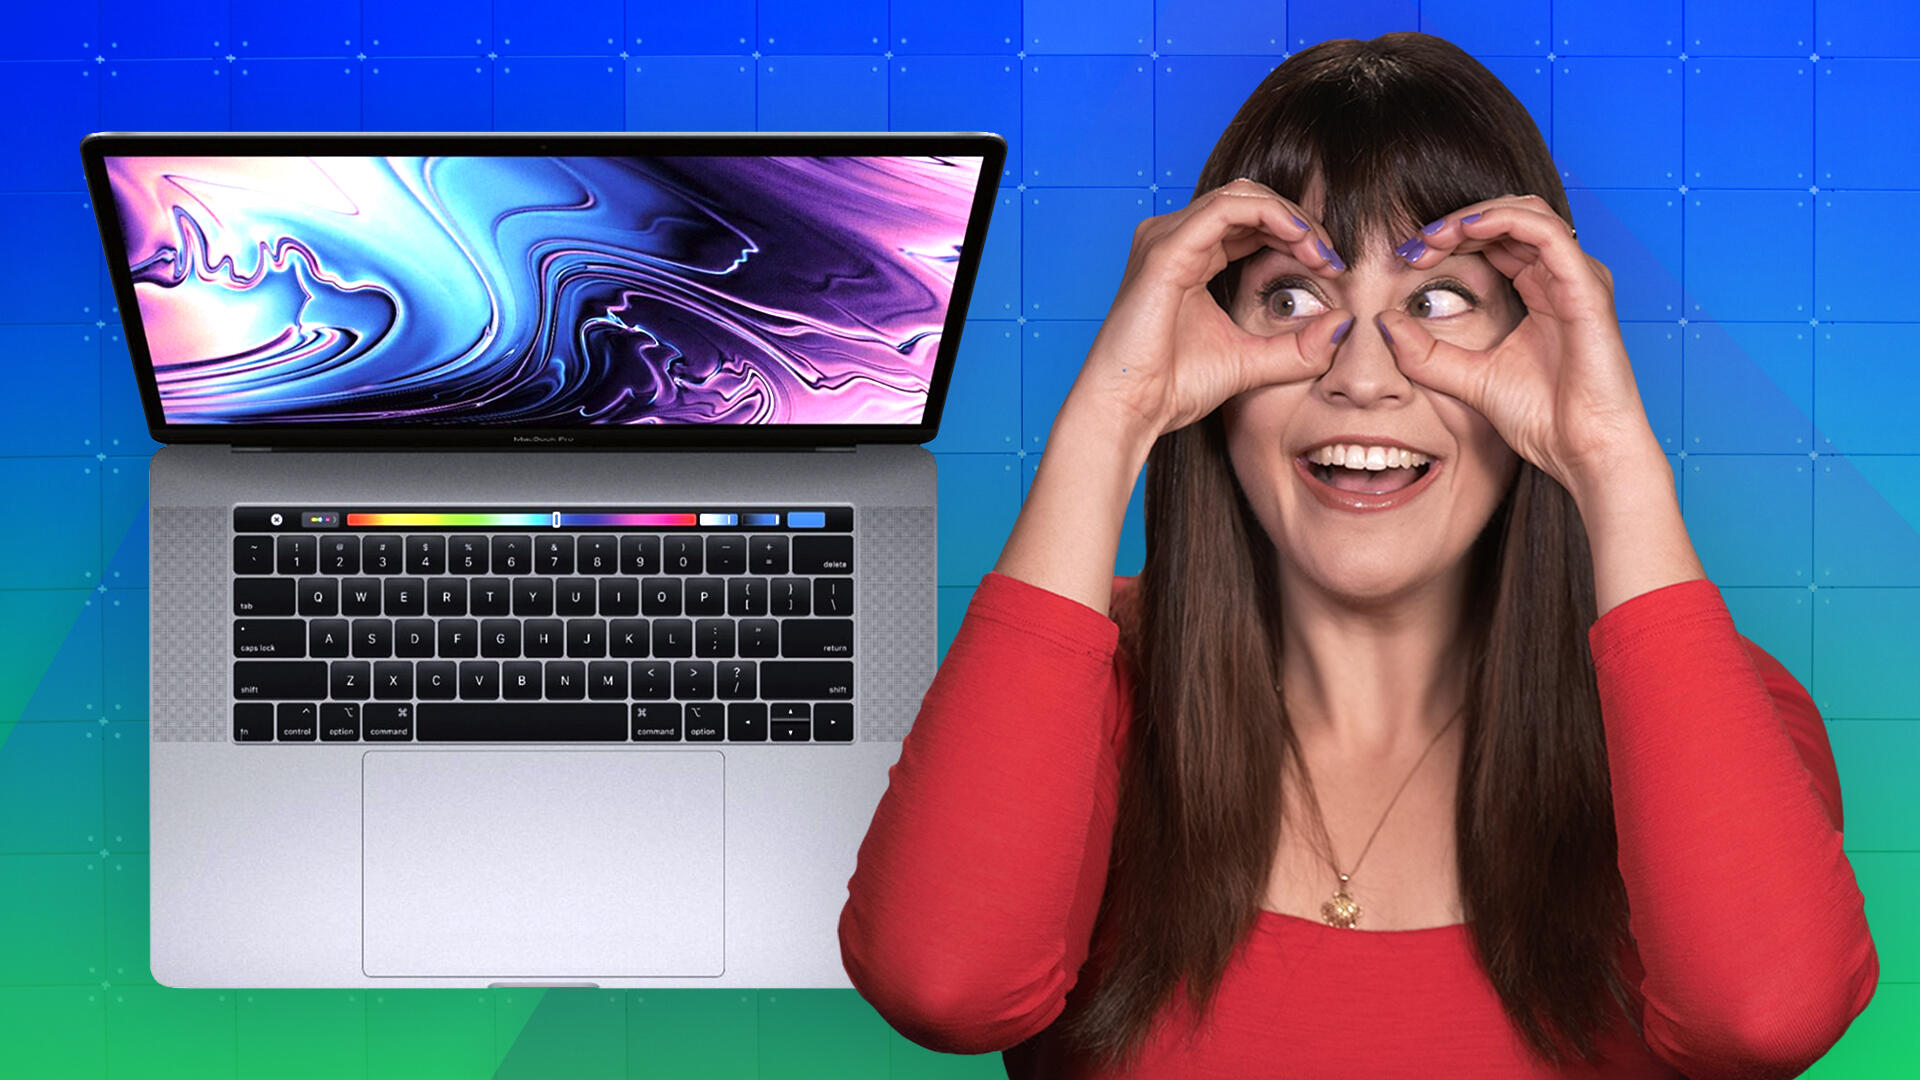 Video: Apple's 16-inch MacBook Pro: Is it for you?